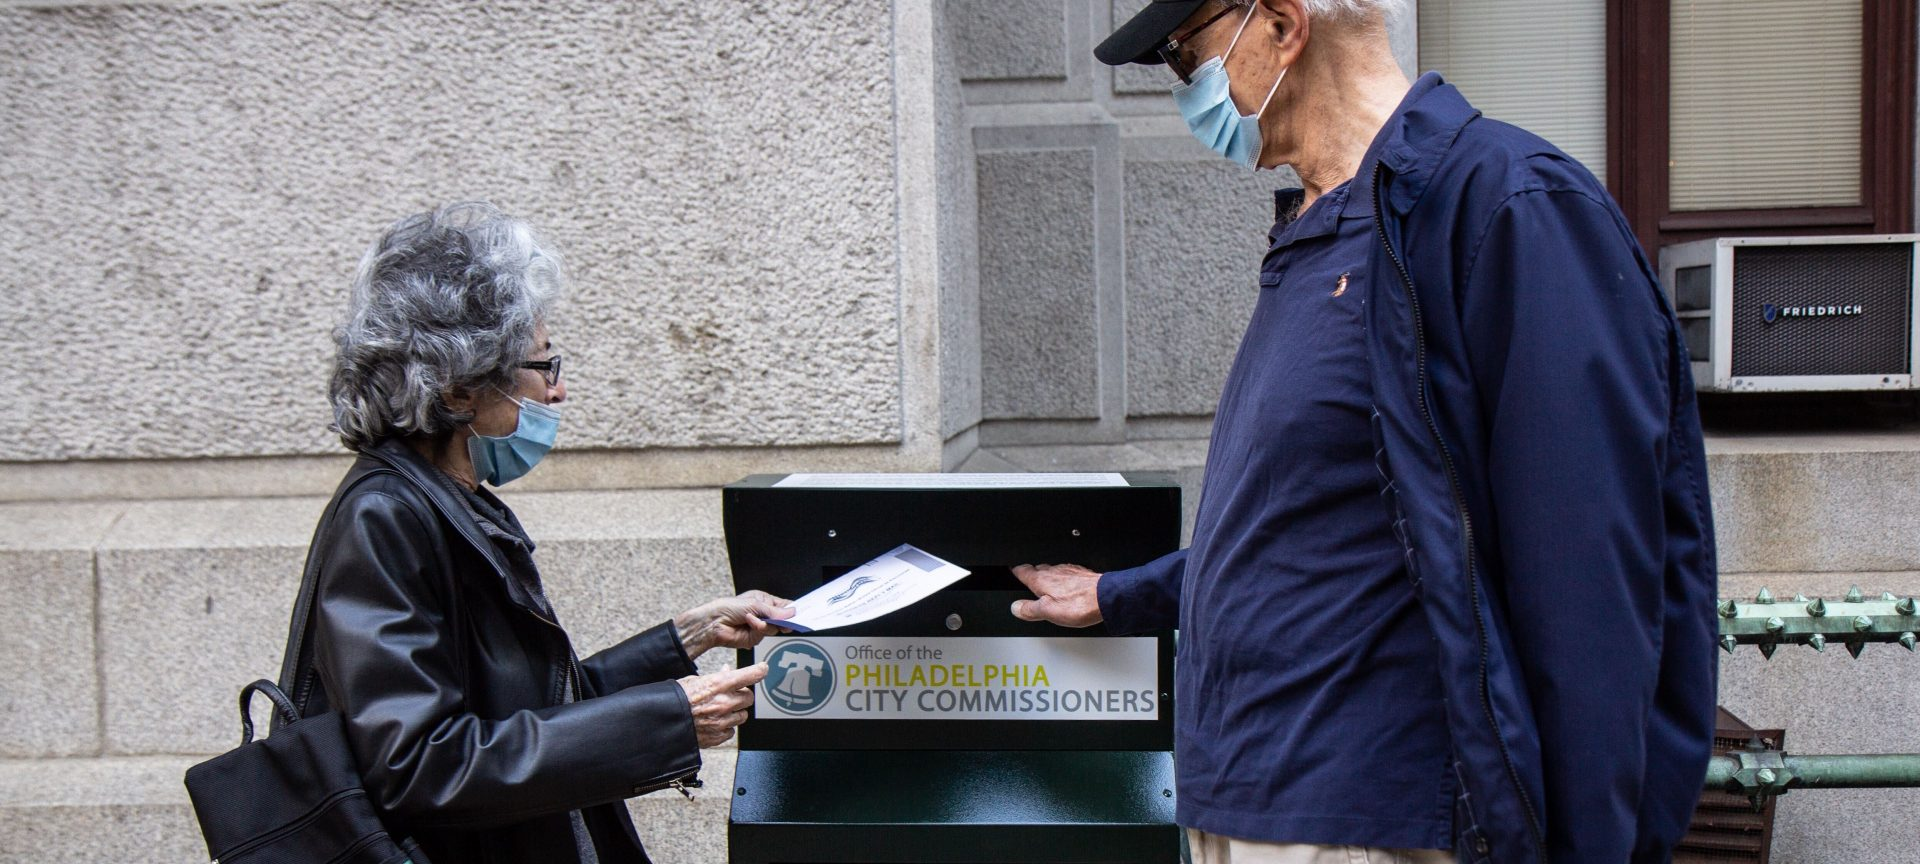 Alice and Len Sayles, Rittenhouse Square residents, return their ballots in the drop box outside City Hall in Philadelphia.